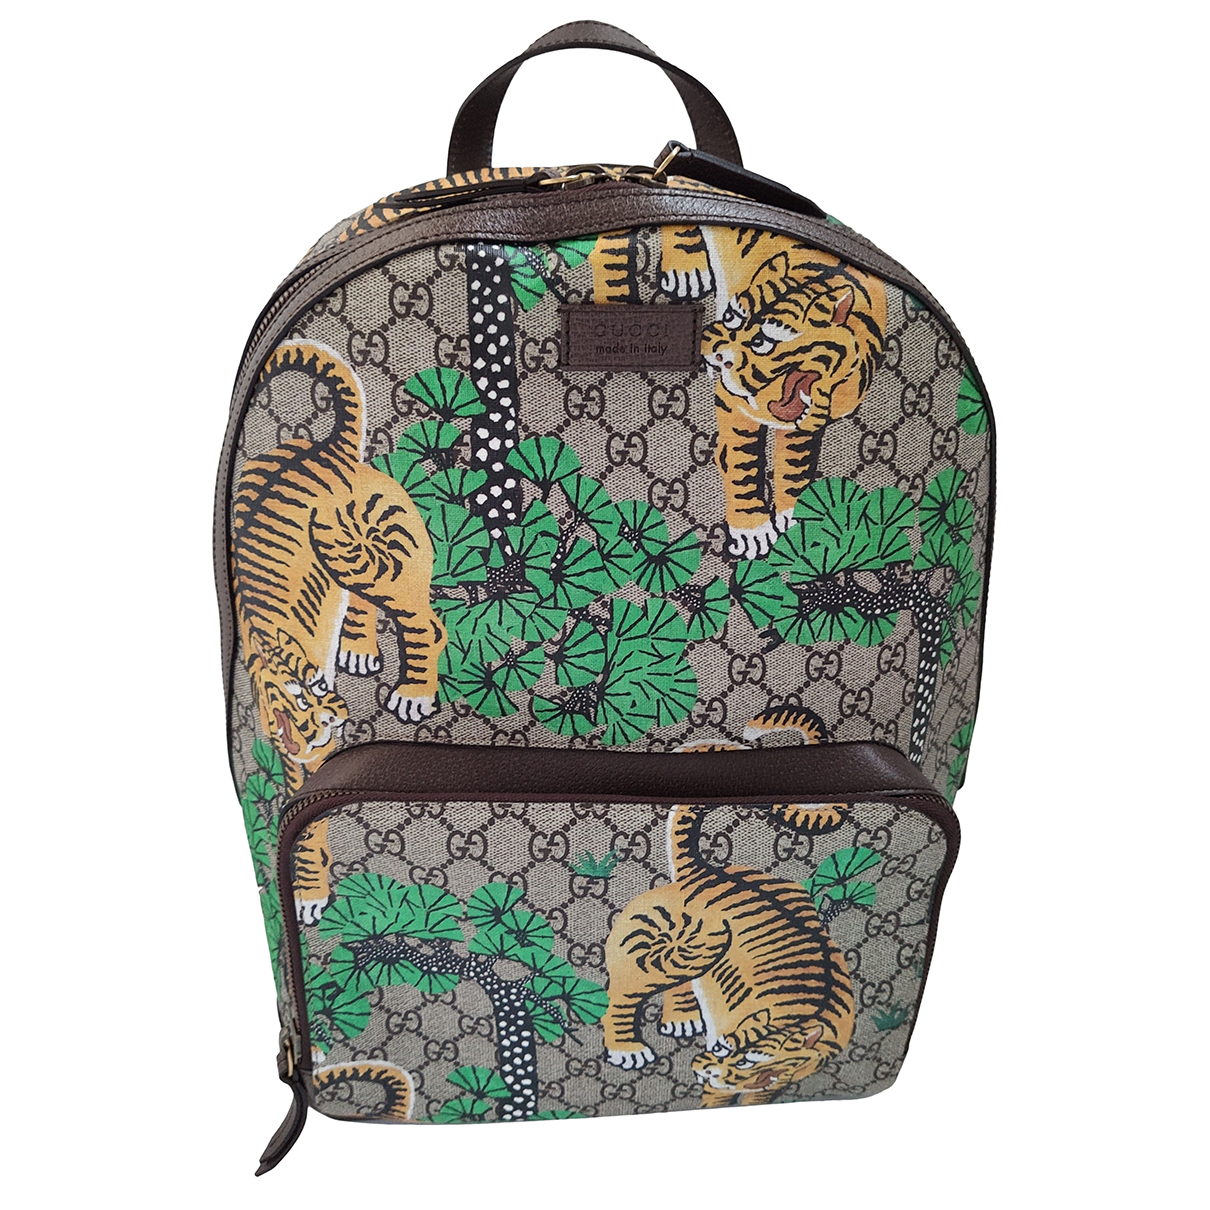 Gucci N Multicolour Leather backpack for Women N